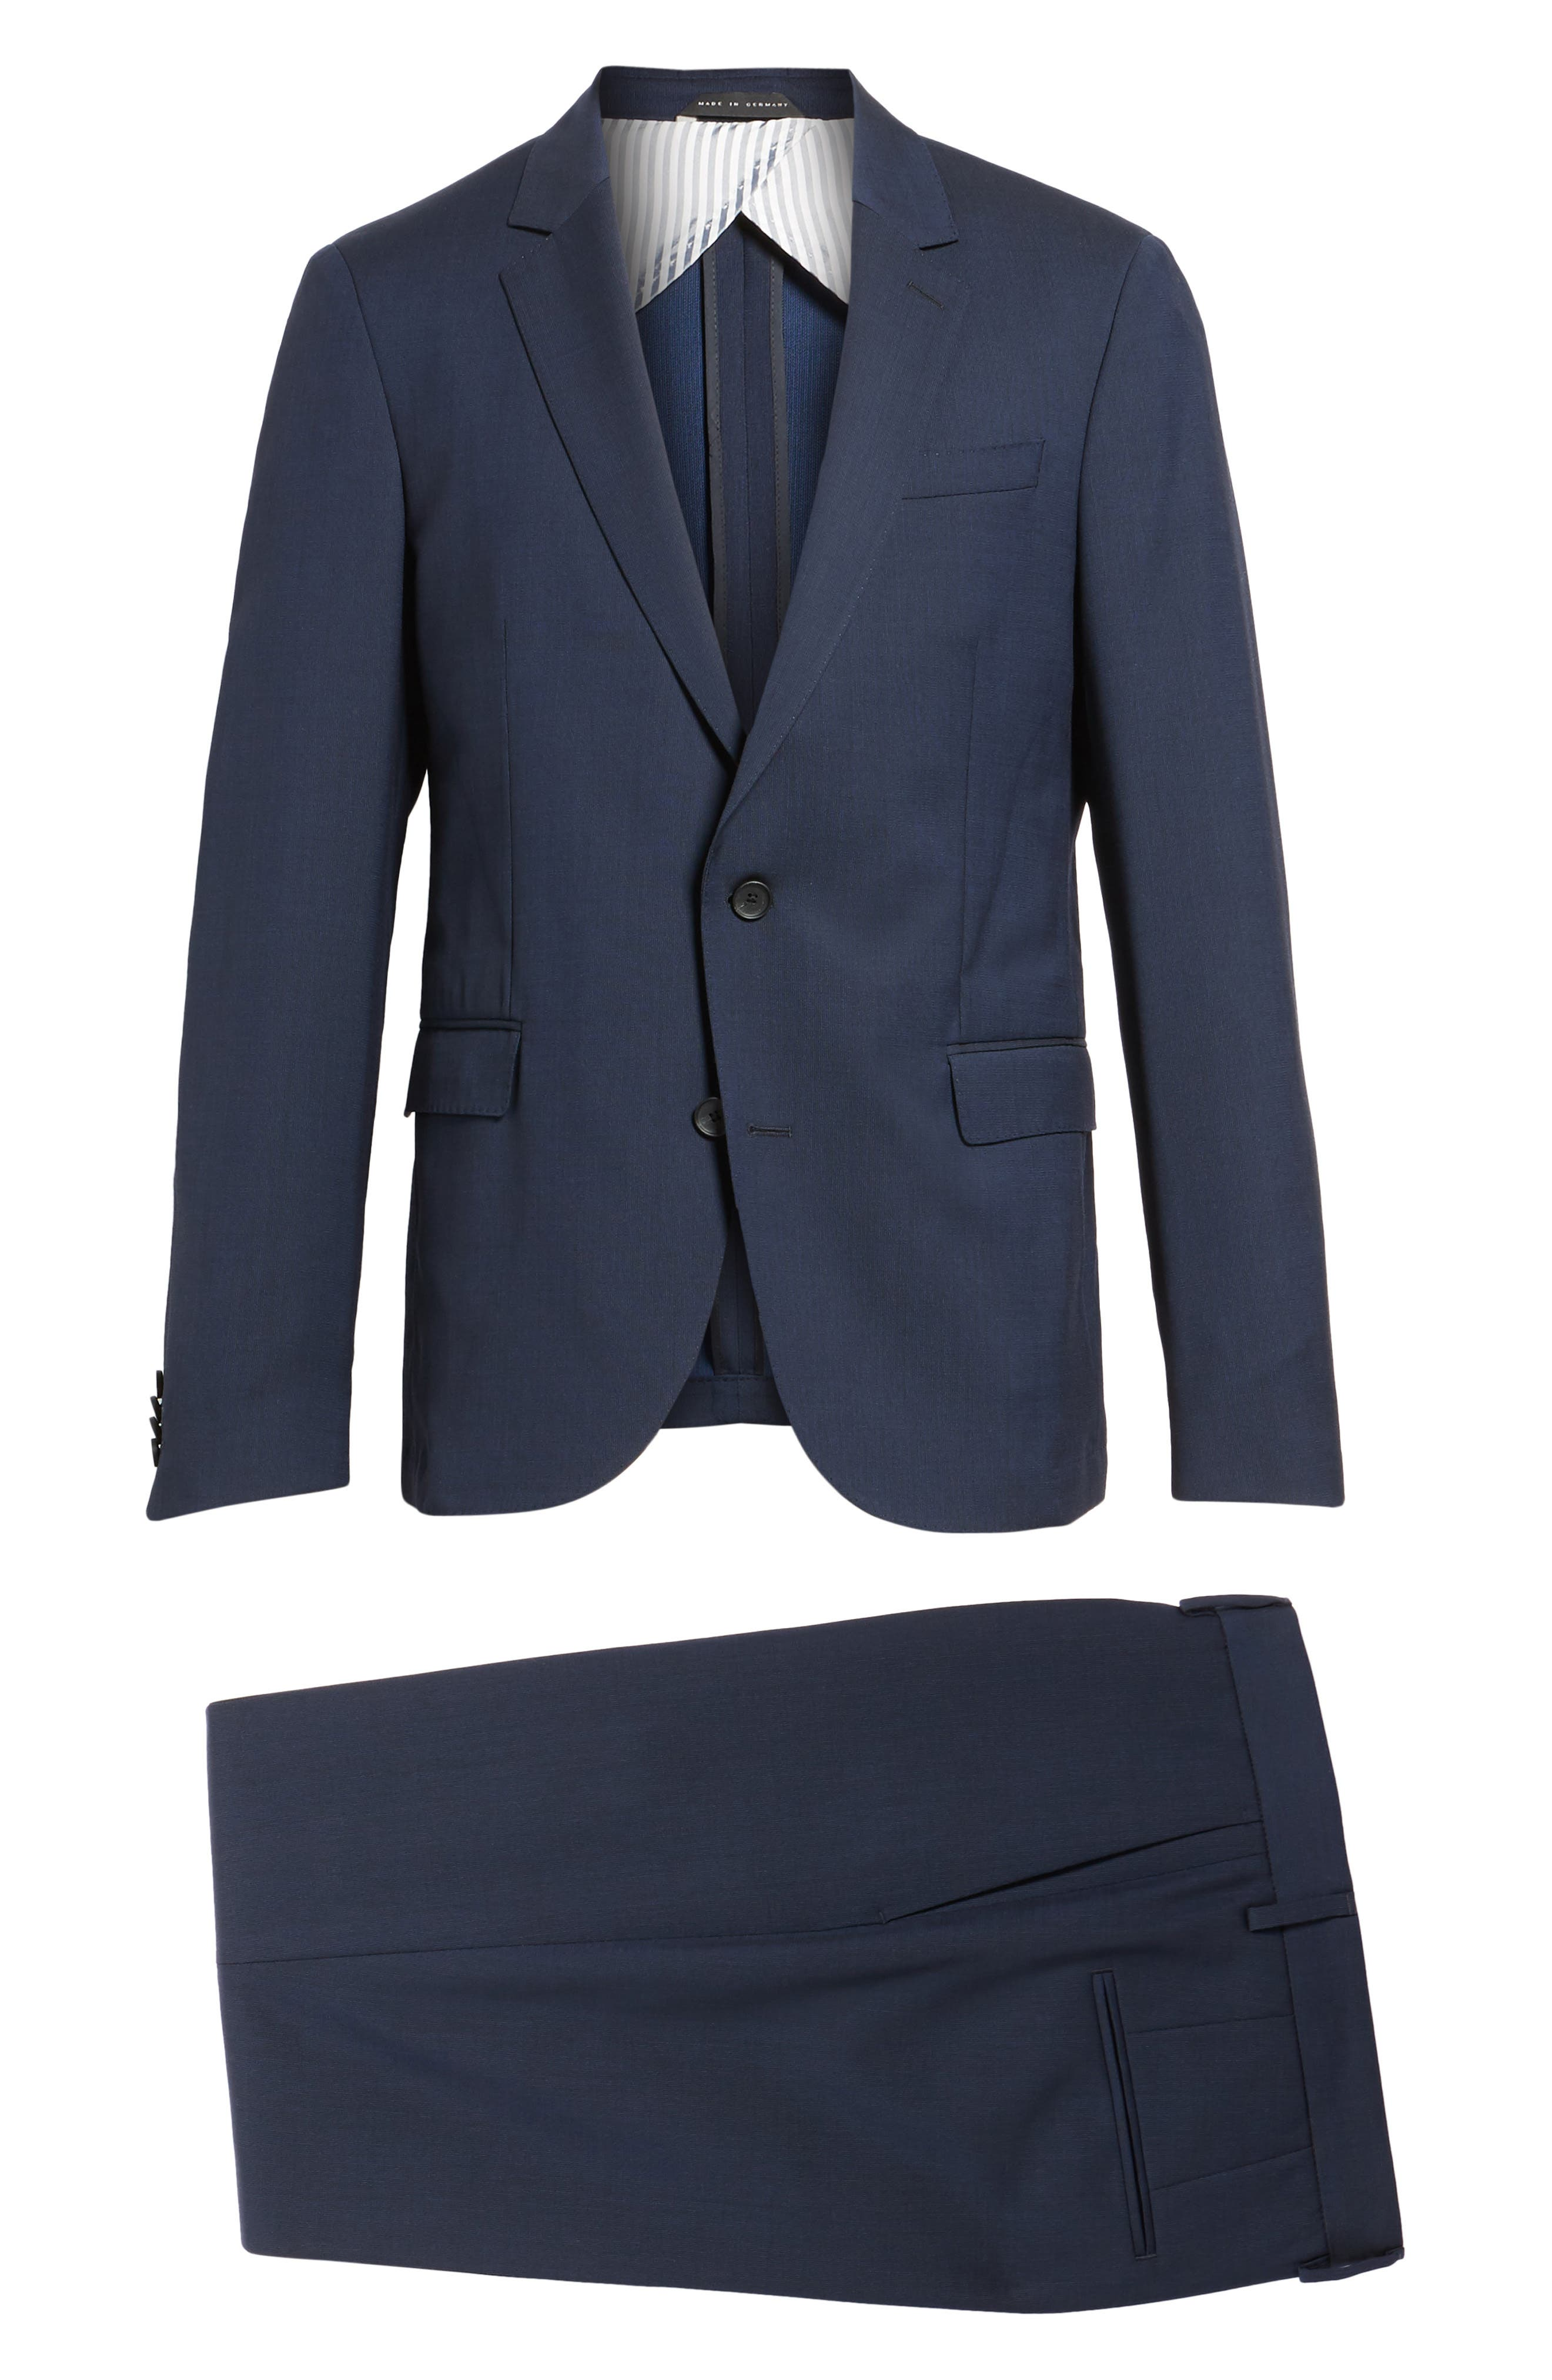 Nylen/Perry Trim Fit Solid Wool Suit,                             Alternate thumbnail 8, color,                             Navy